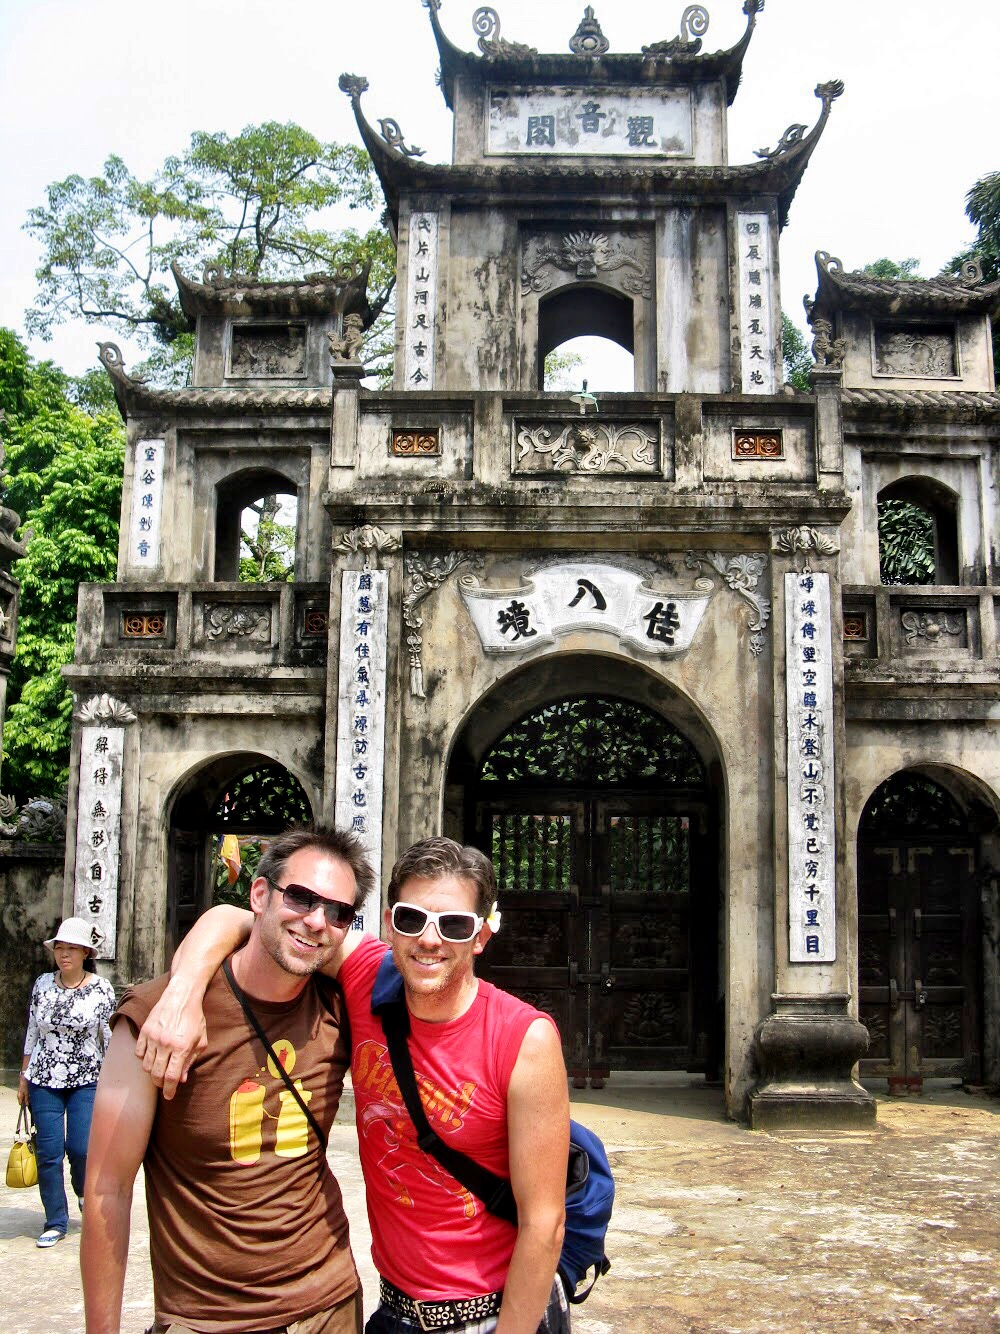 """Duke and Wally in front of a gate at the temple complex, a large portion of which was referred to as """"the Kitchen"""" by our guide. We wondered if that meant it was a ceremonial or banquet space"""